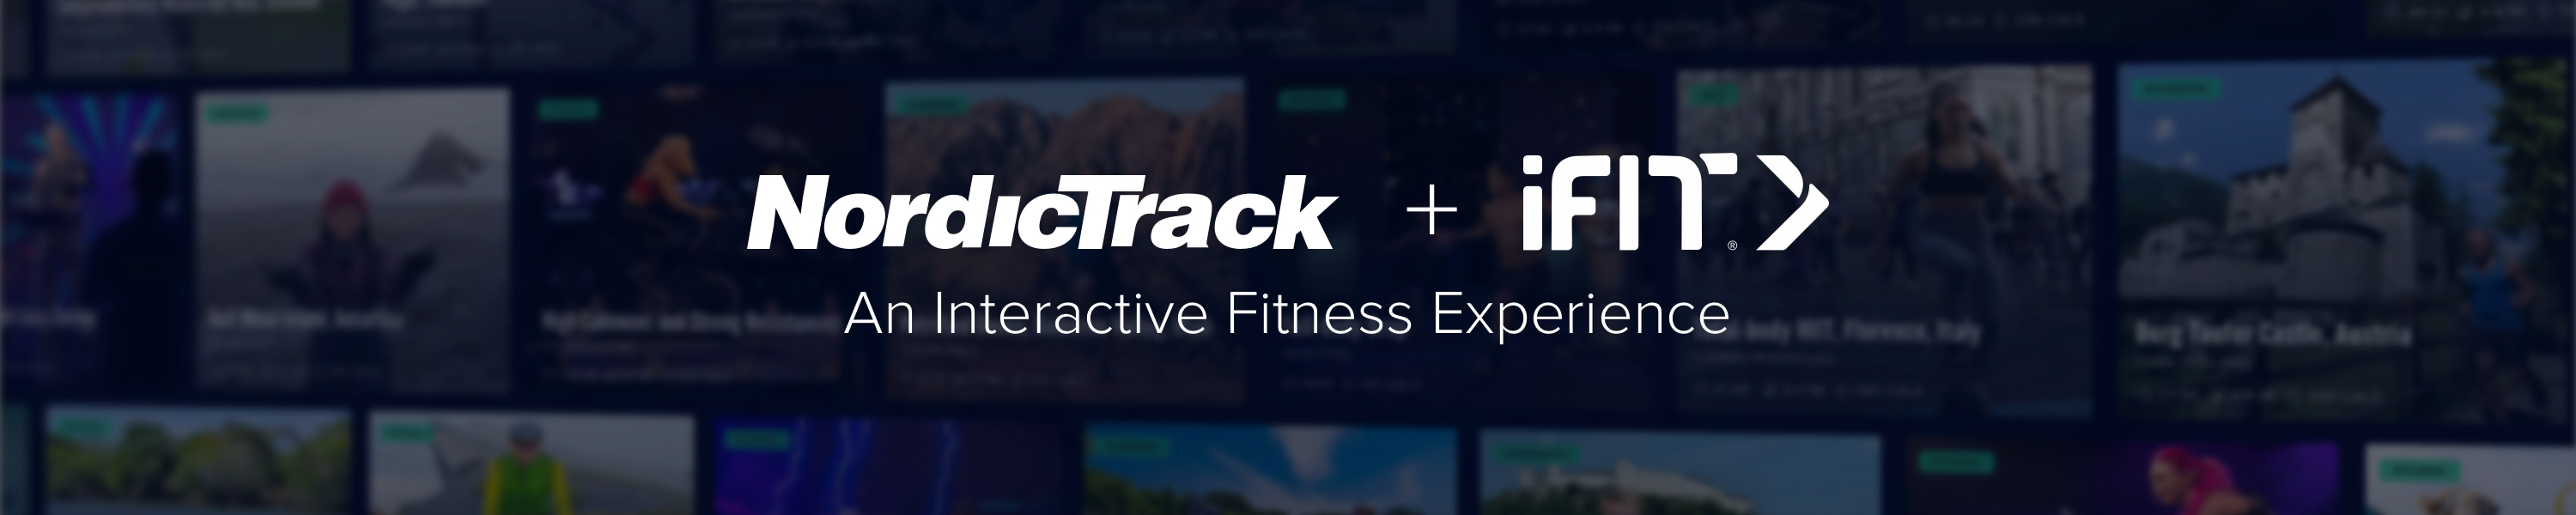 Nordictrack iFIT Banner